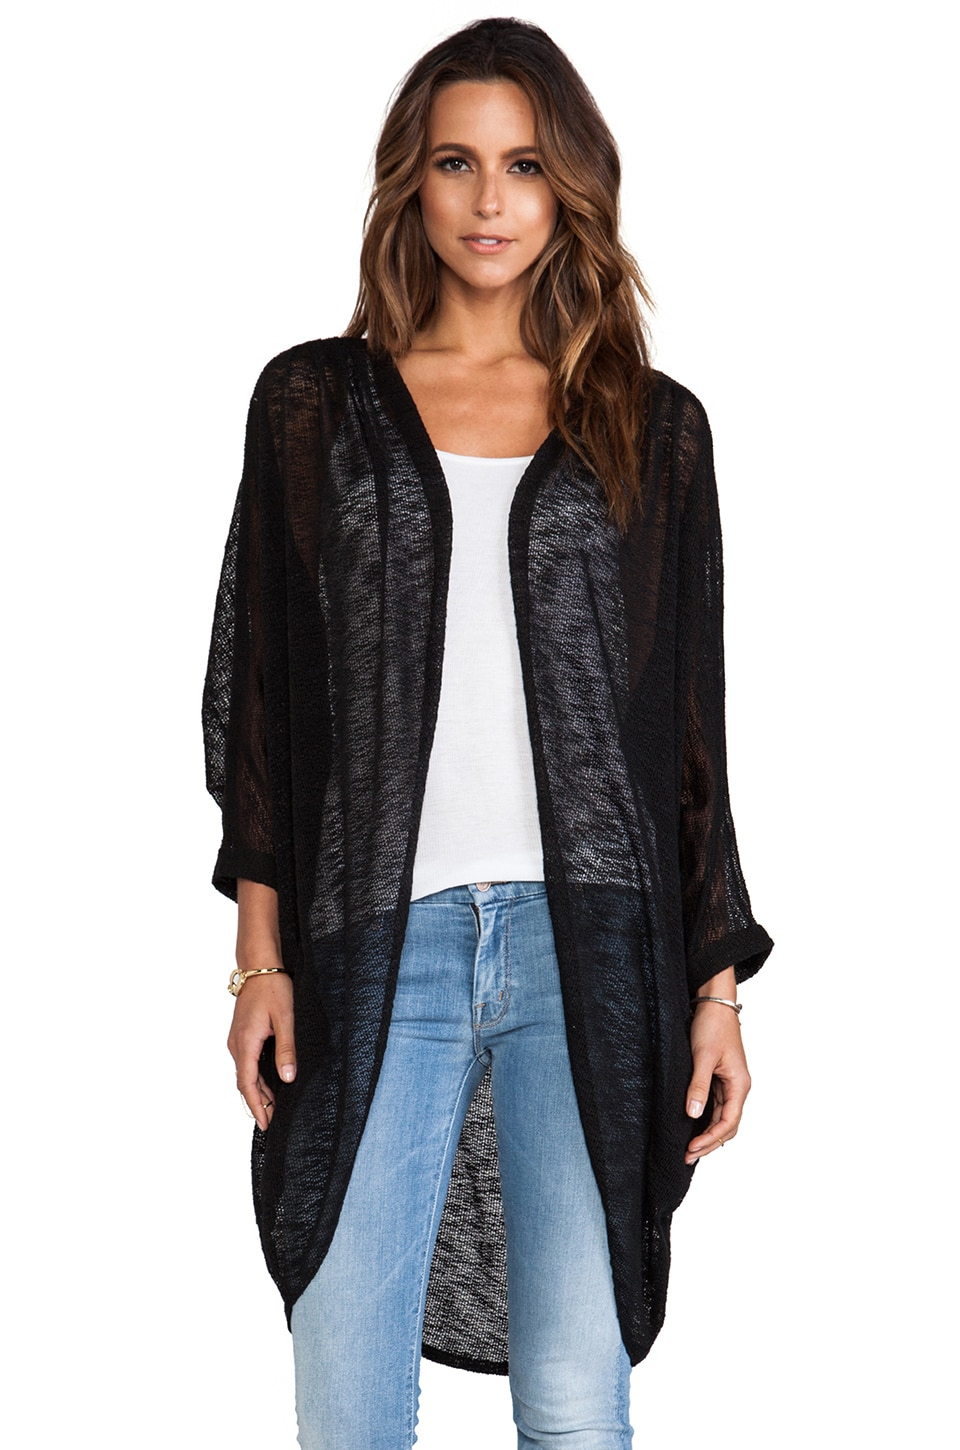 Tylie Sweater Knit Cardigan in Dark Charcoal